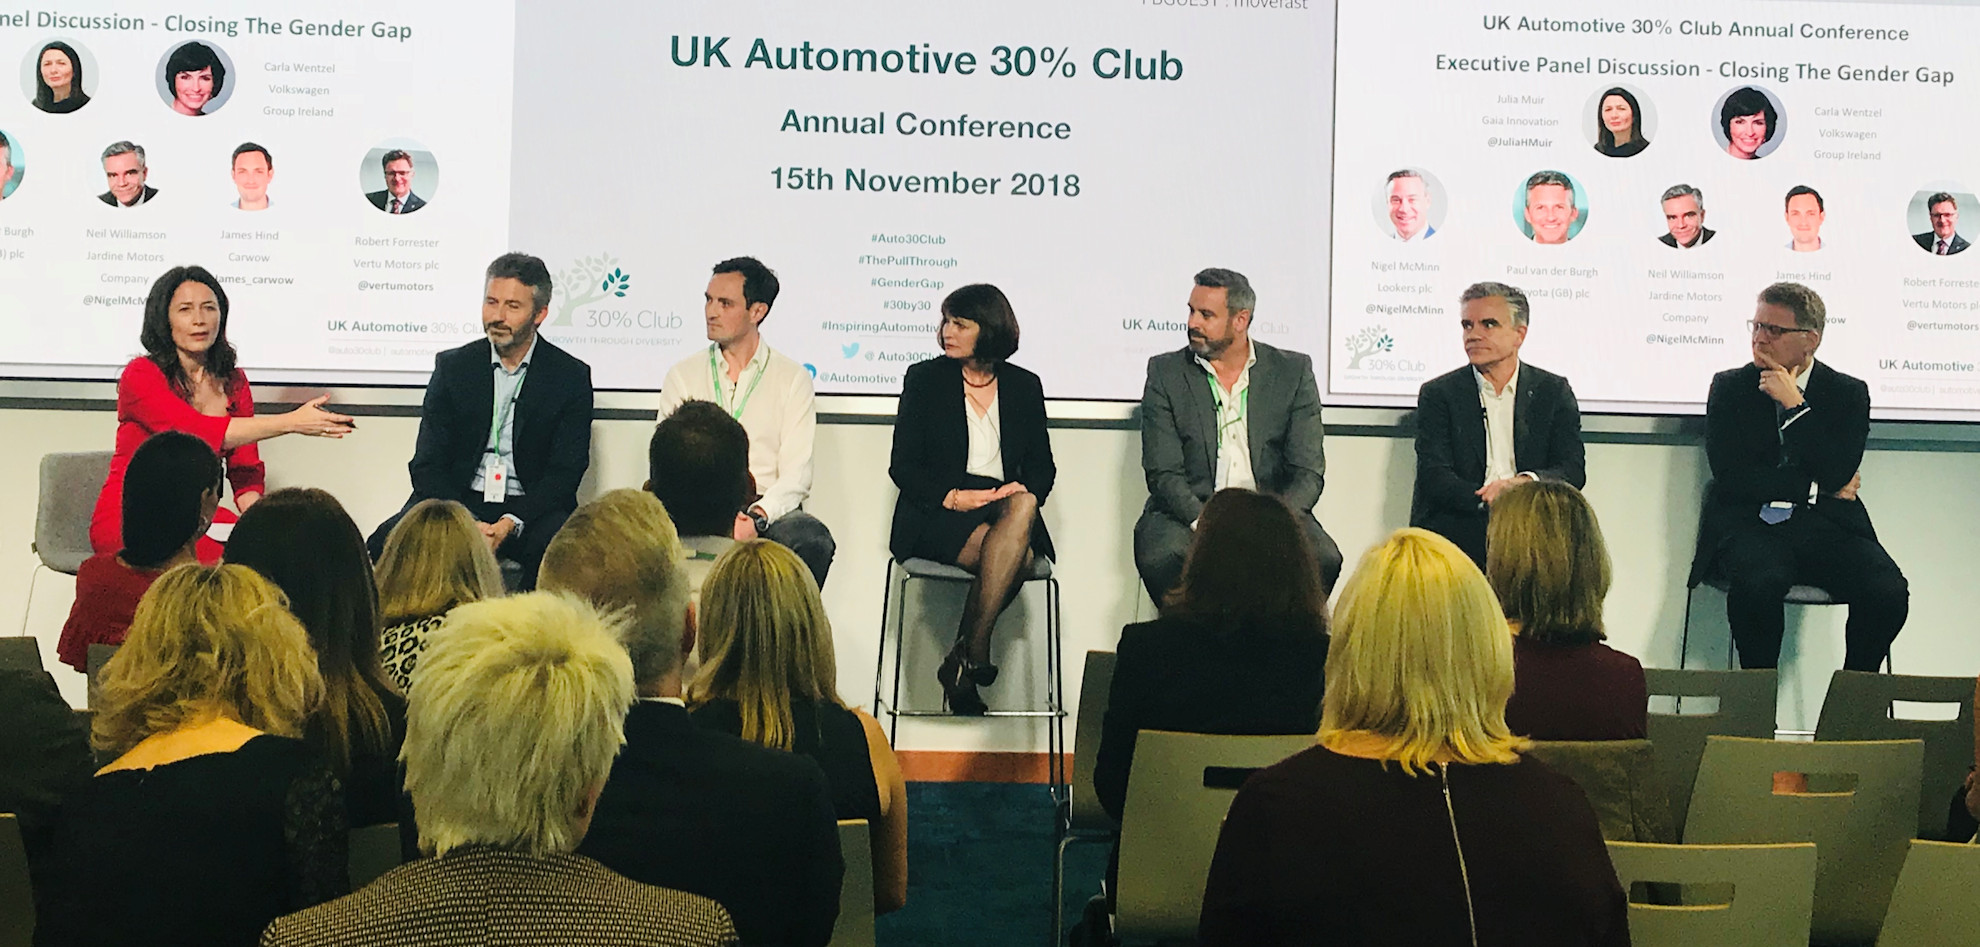 The UK Automotive 30% Club Executive Panel (photograph)